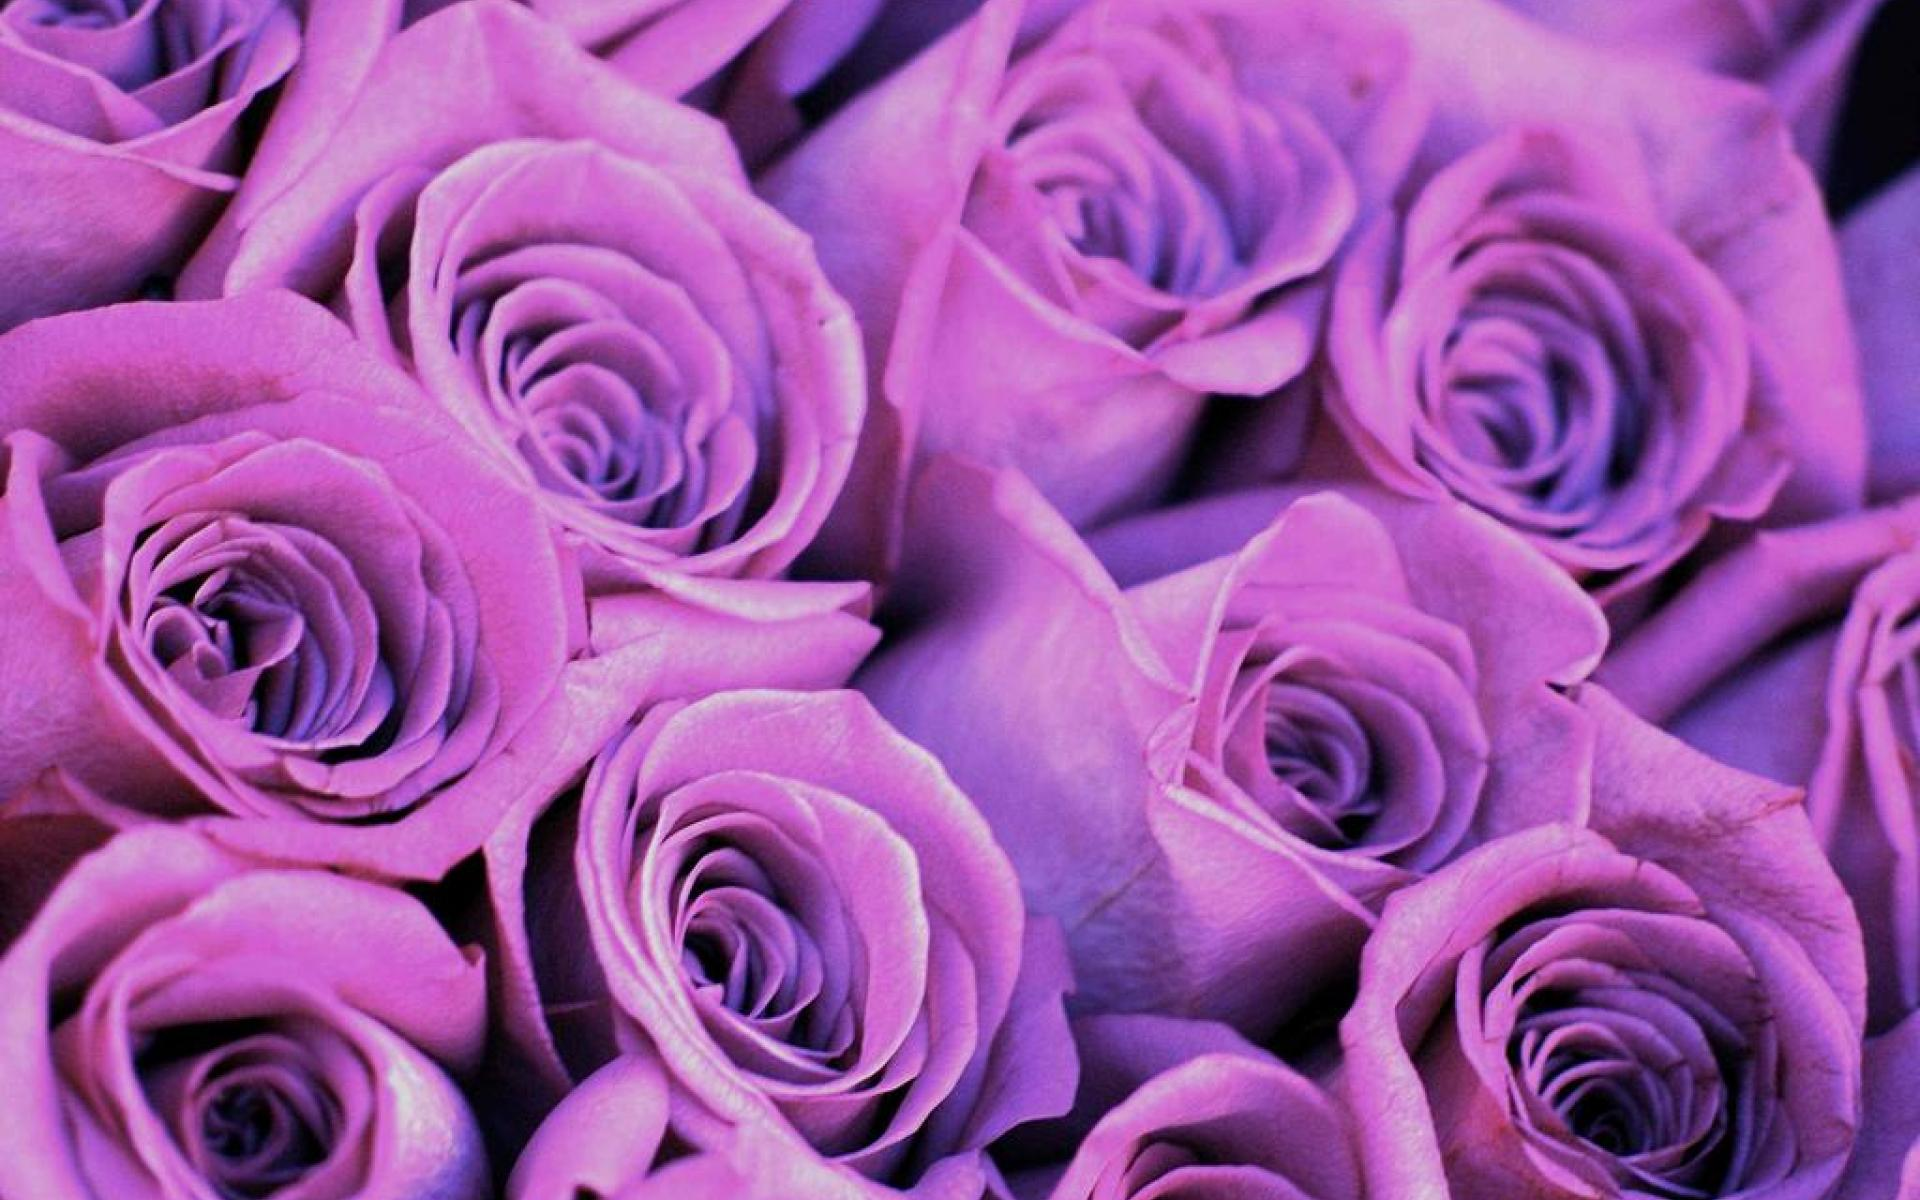 wallpapers of purple roses - photo #28